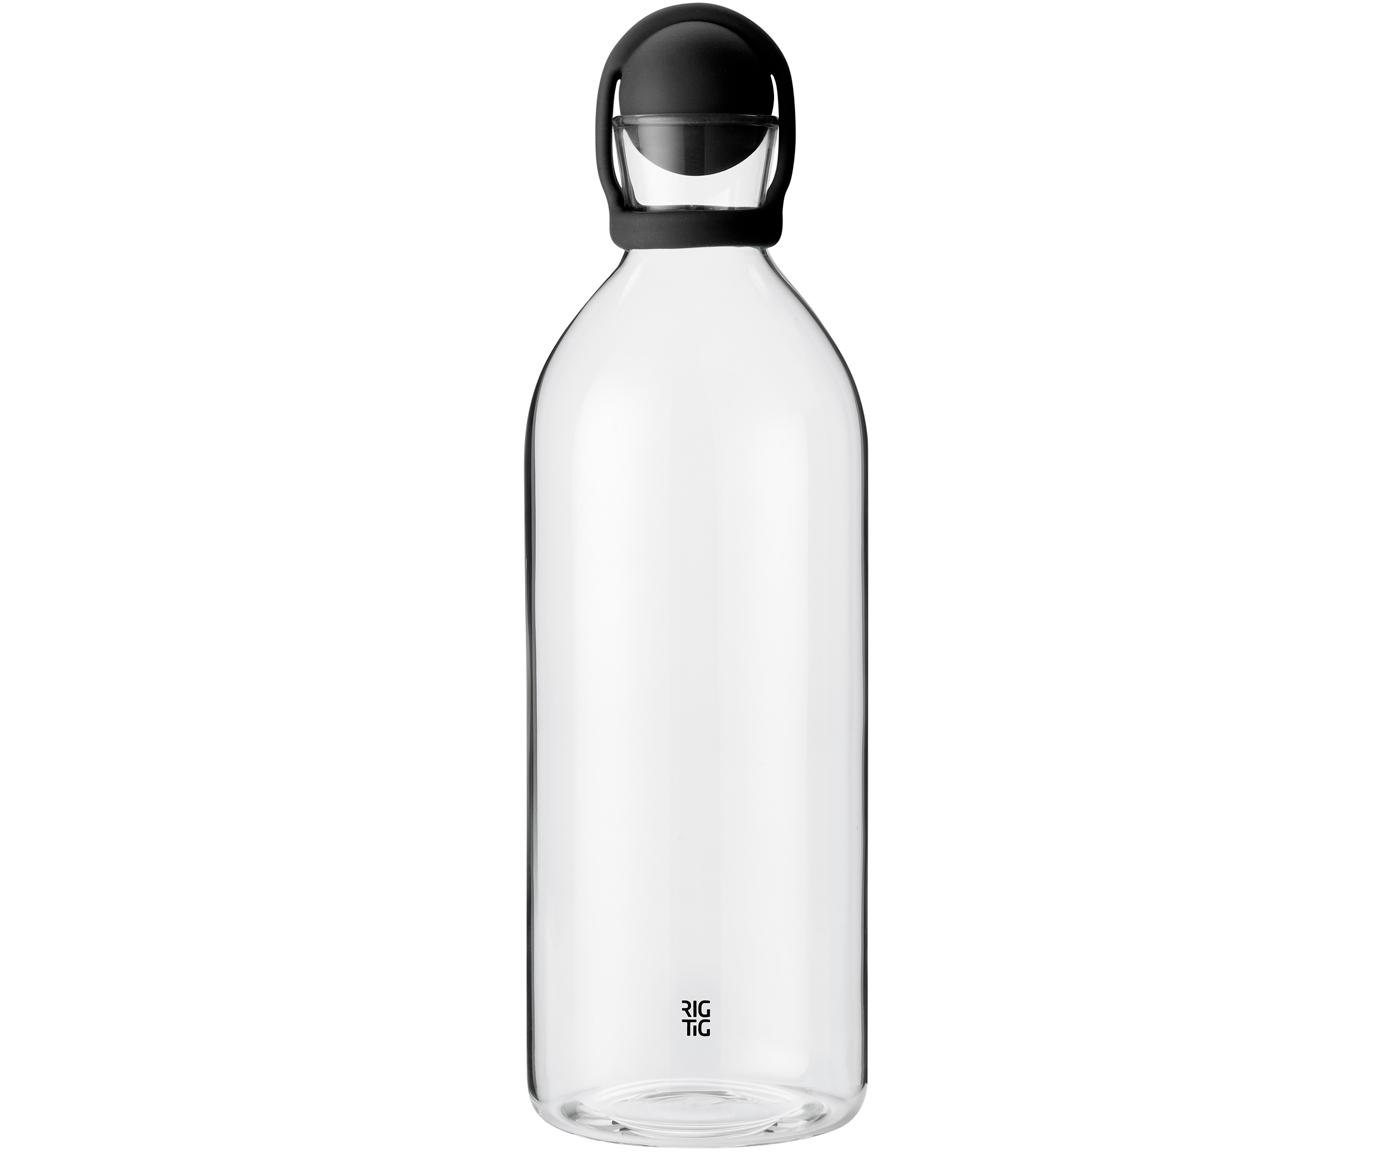 Karafka do wody Cool-It, Czarny, transparentny, 1,5 l